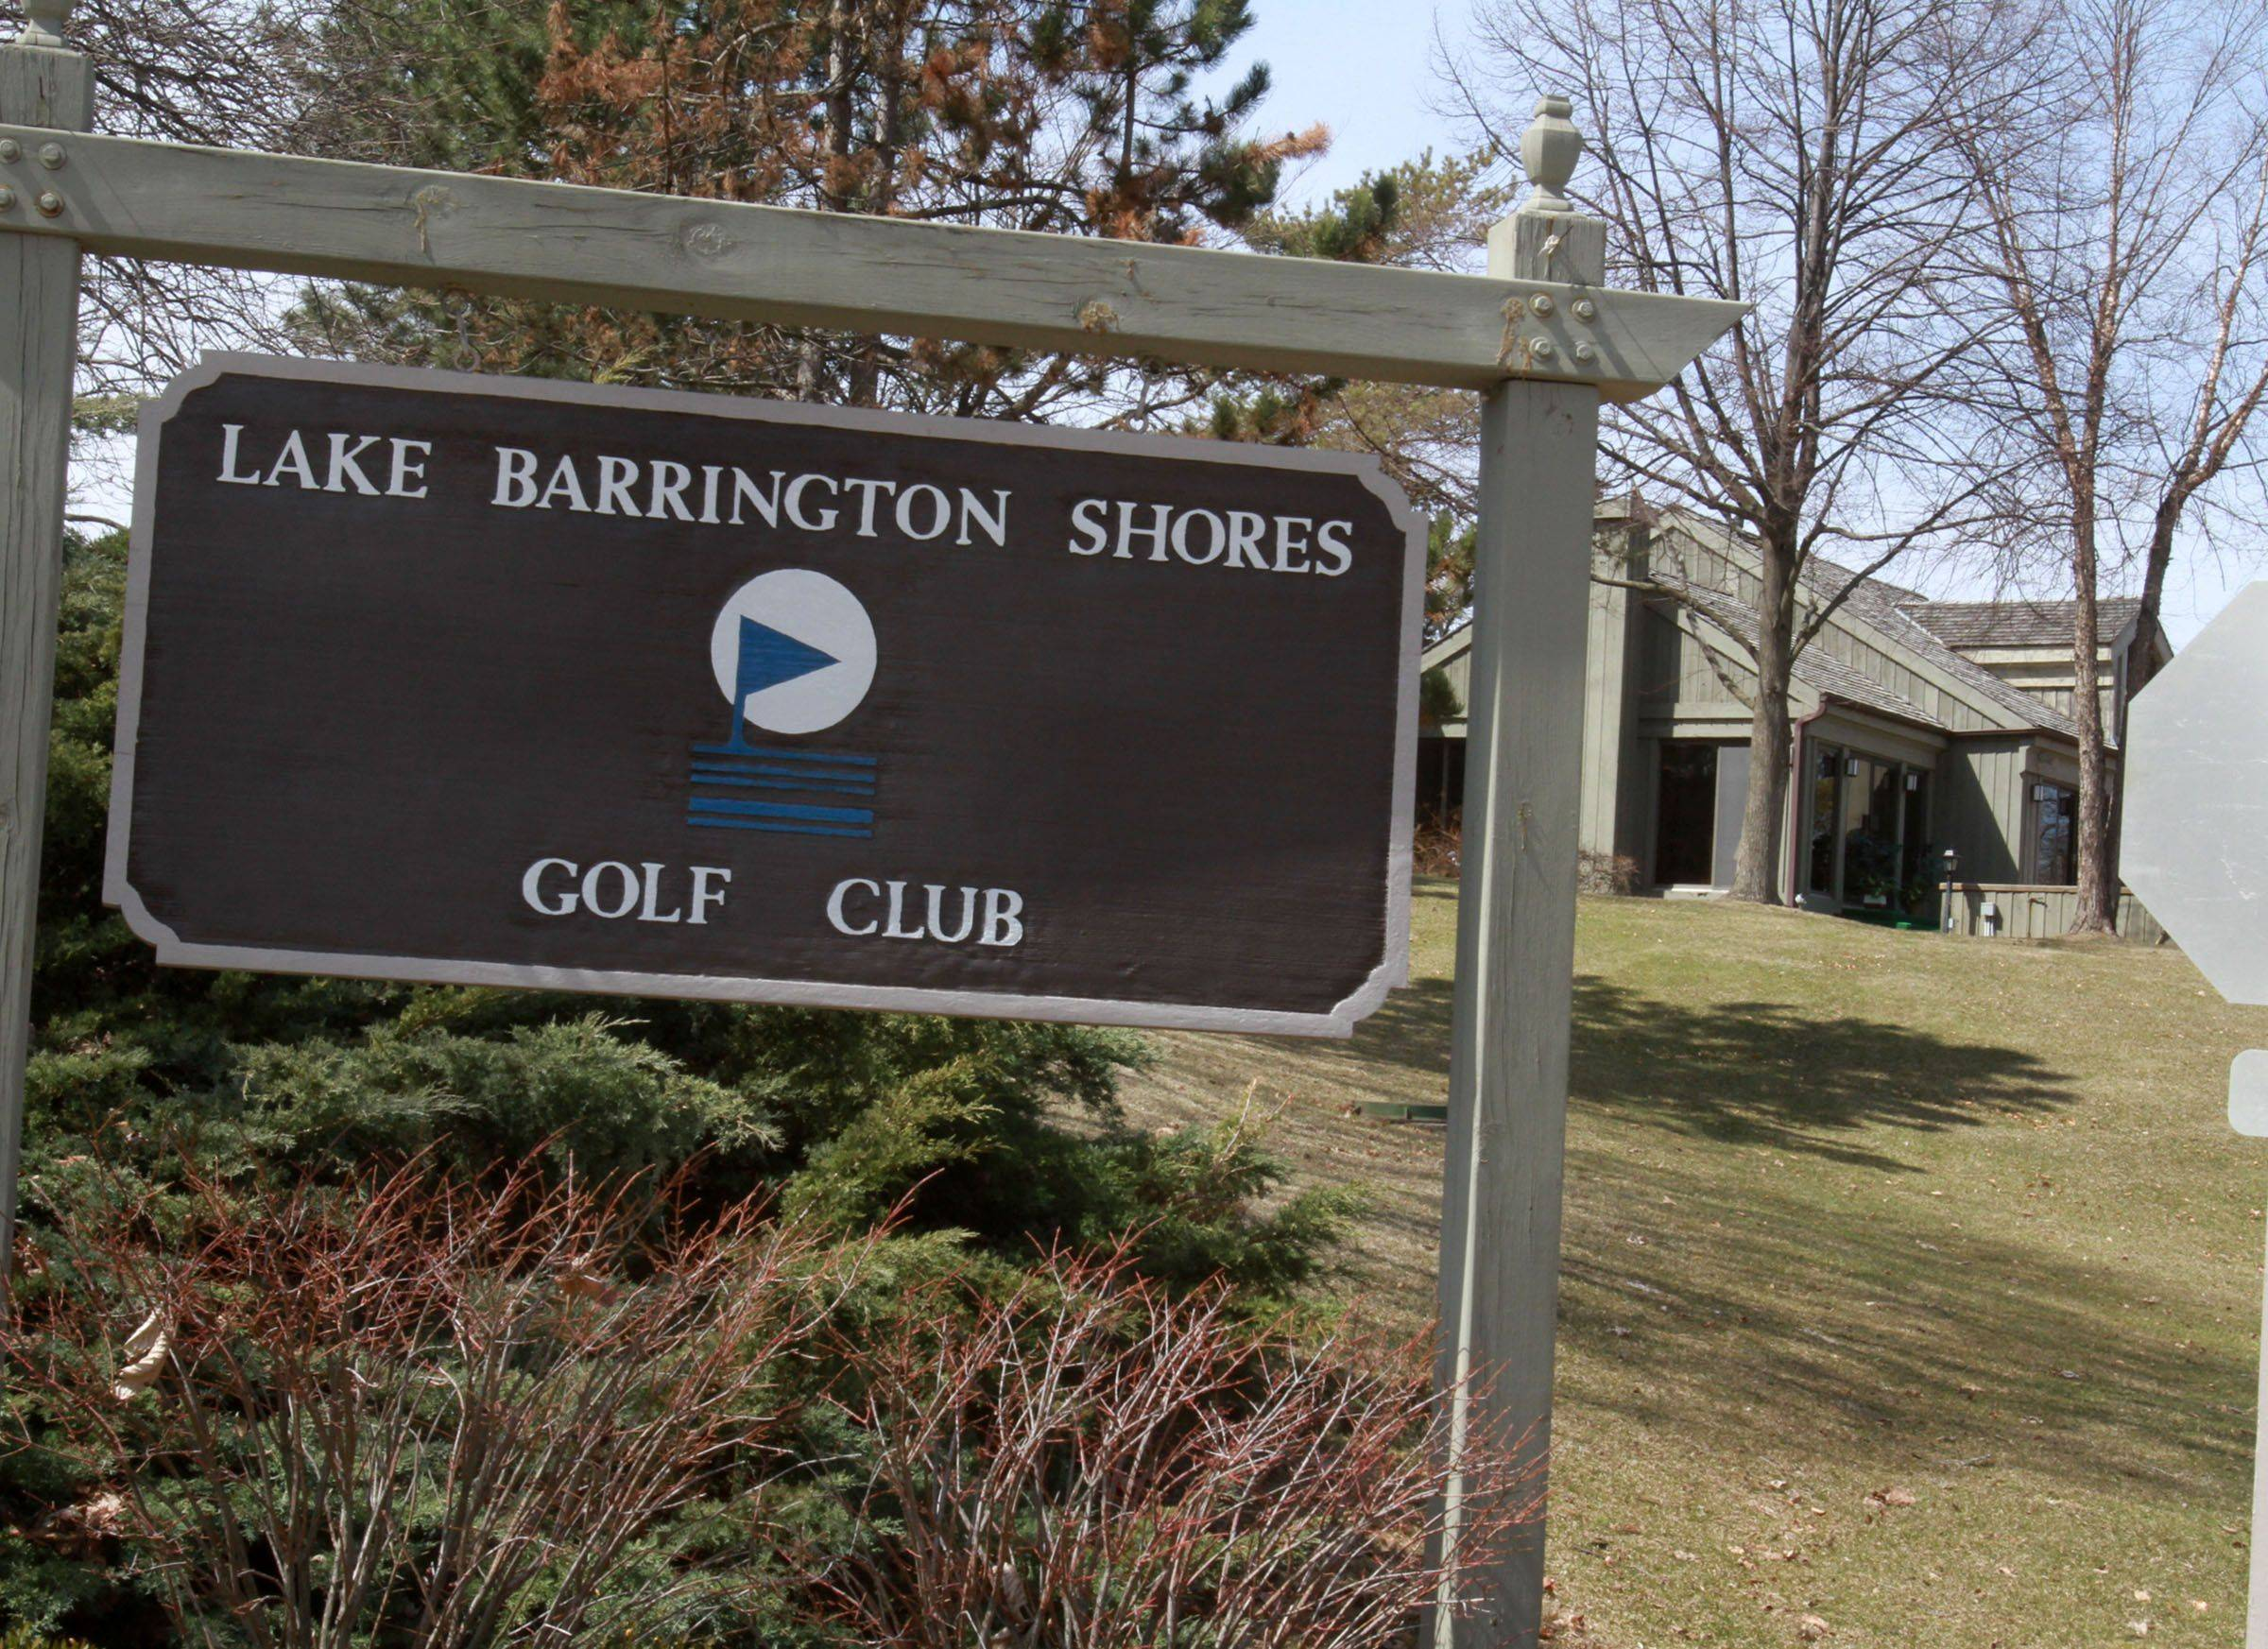 The Lake Barrington Shores Homeowners Association is considering whether to buy the recently foreclosed Lake Barrington Shores Golf Club.